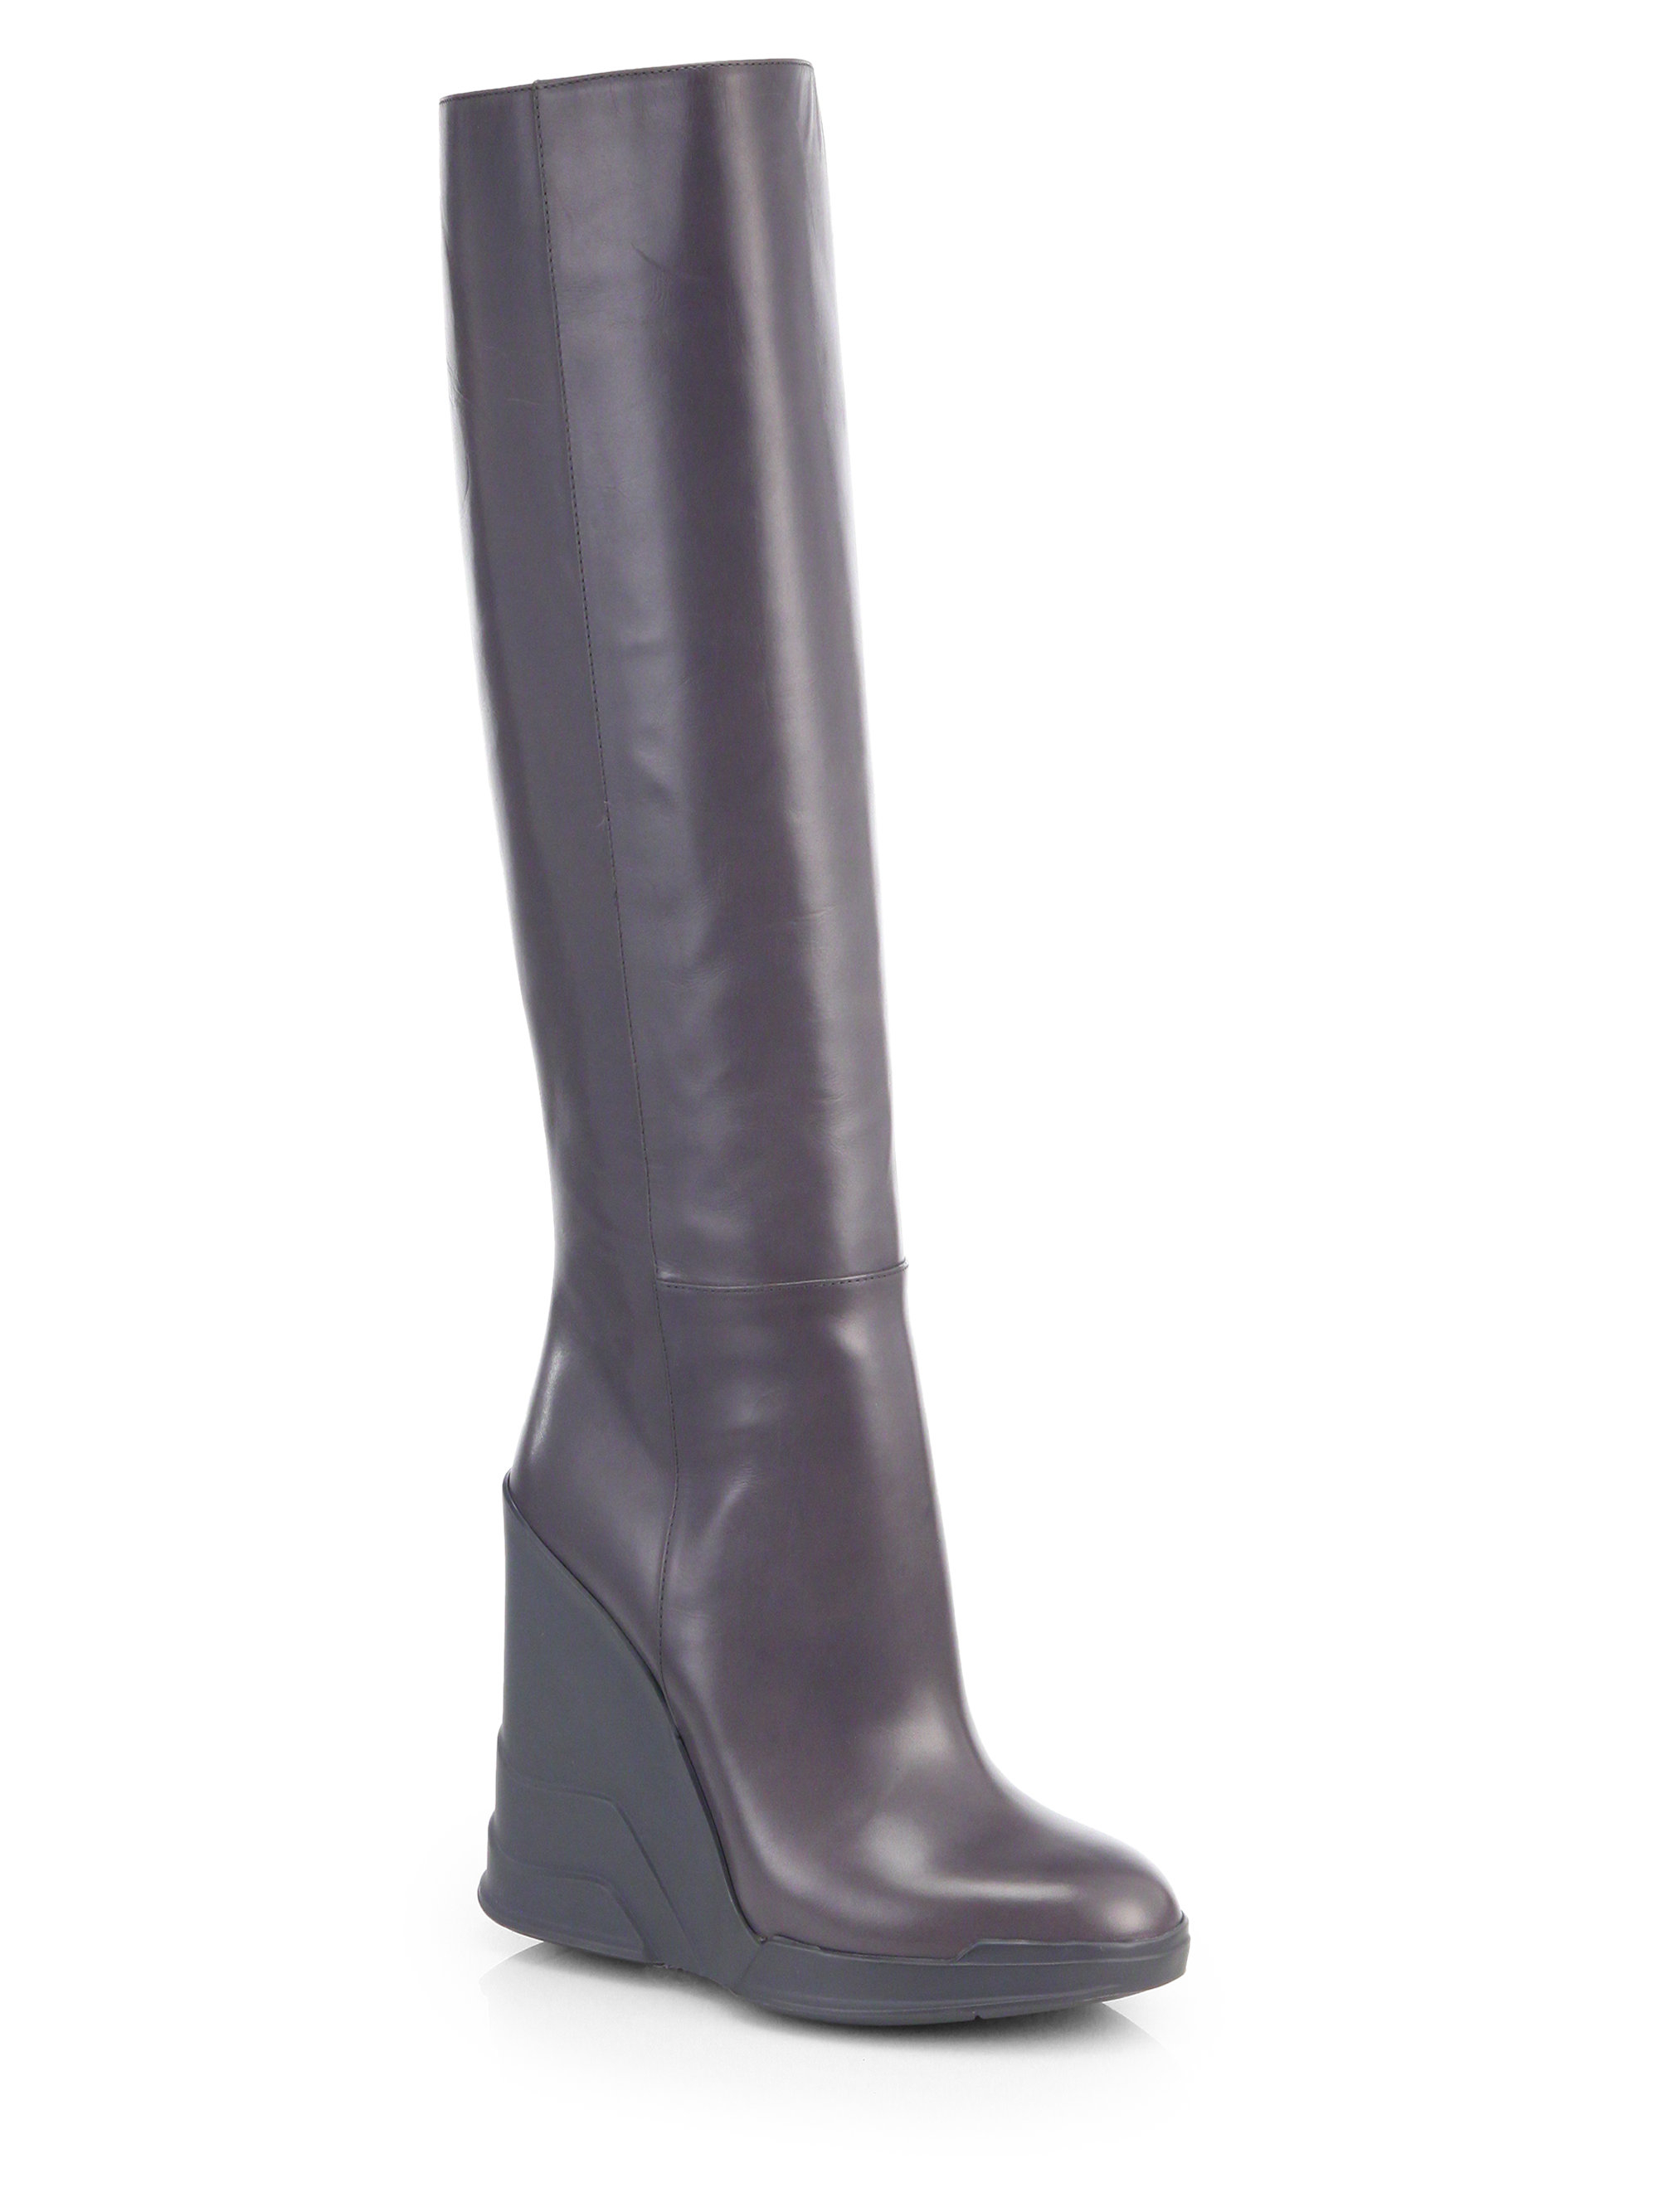 prada leather knee high wedge boots in brown mercurio